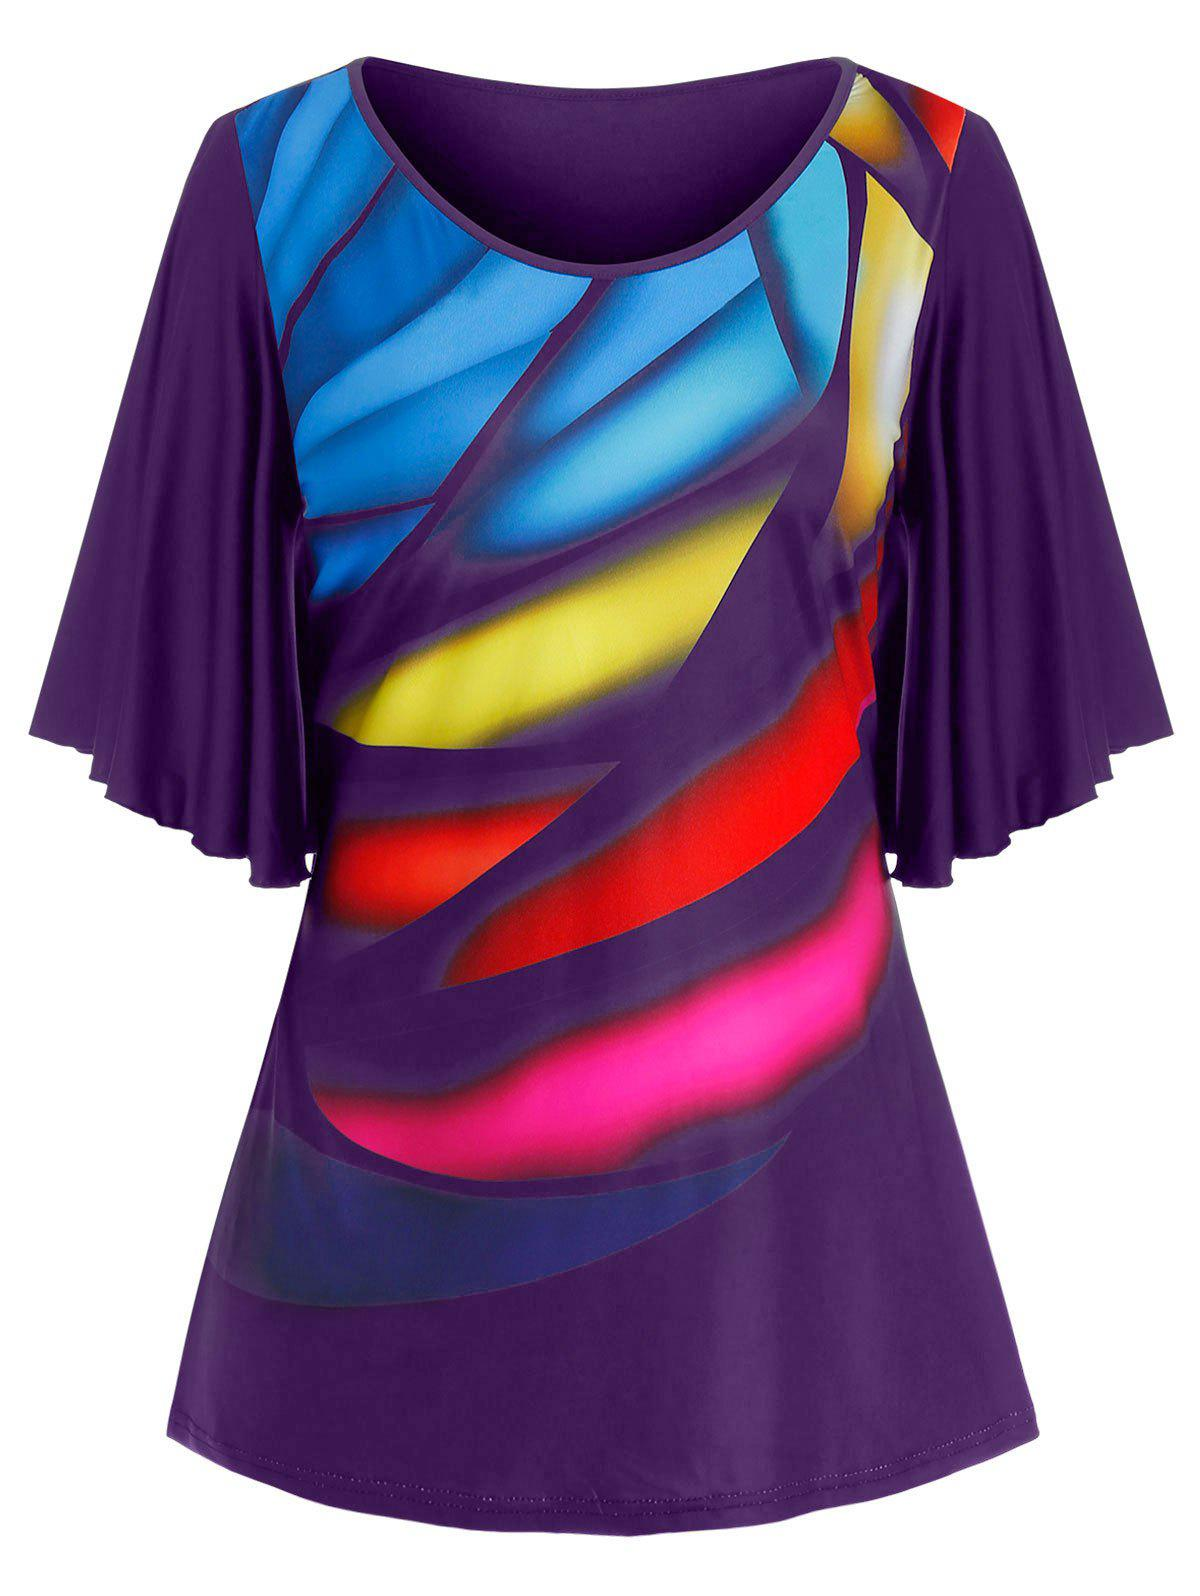 Chic Plus Size Colorful Print Butterfly Sleeve Tunic Tee